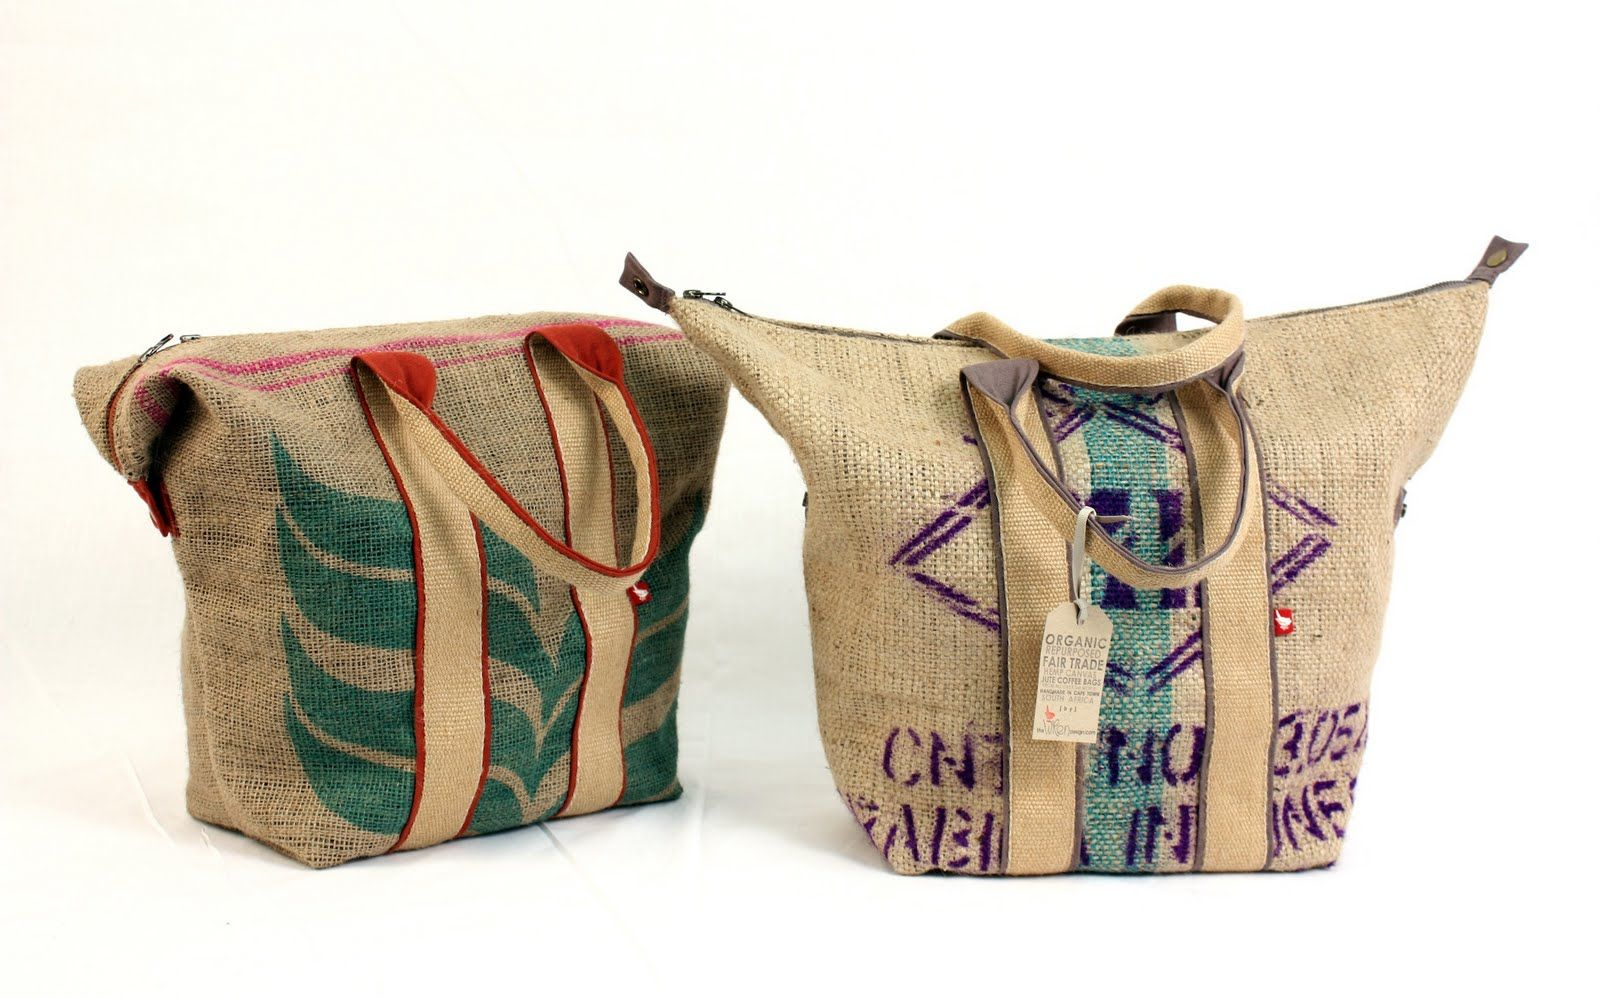 Awesome south african organic designer bags made from